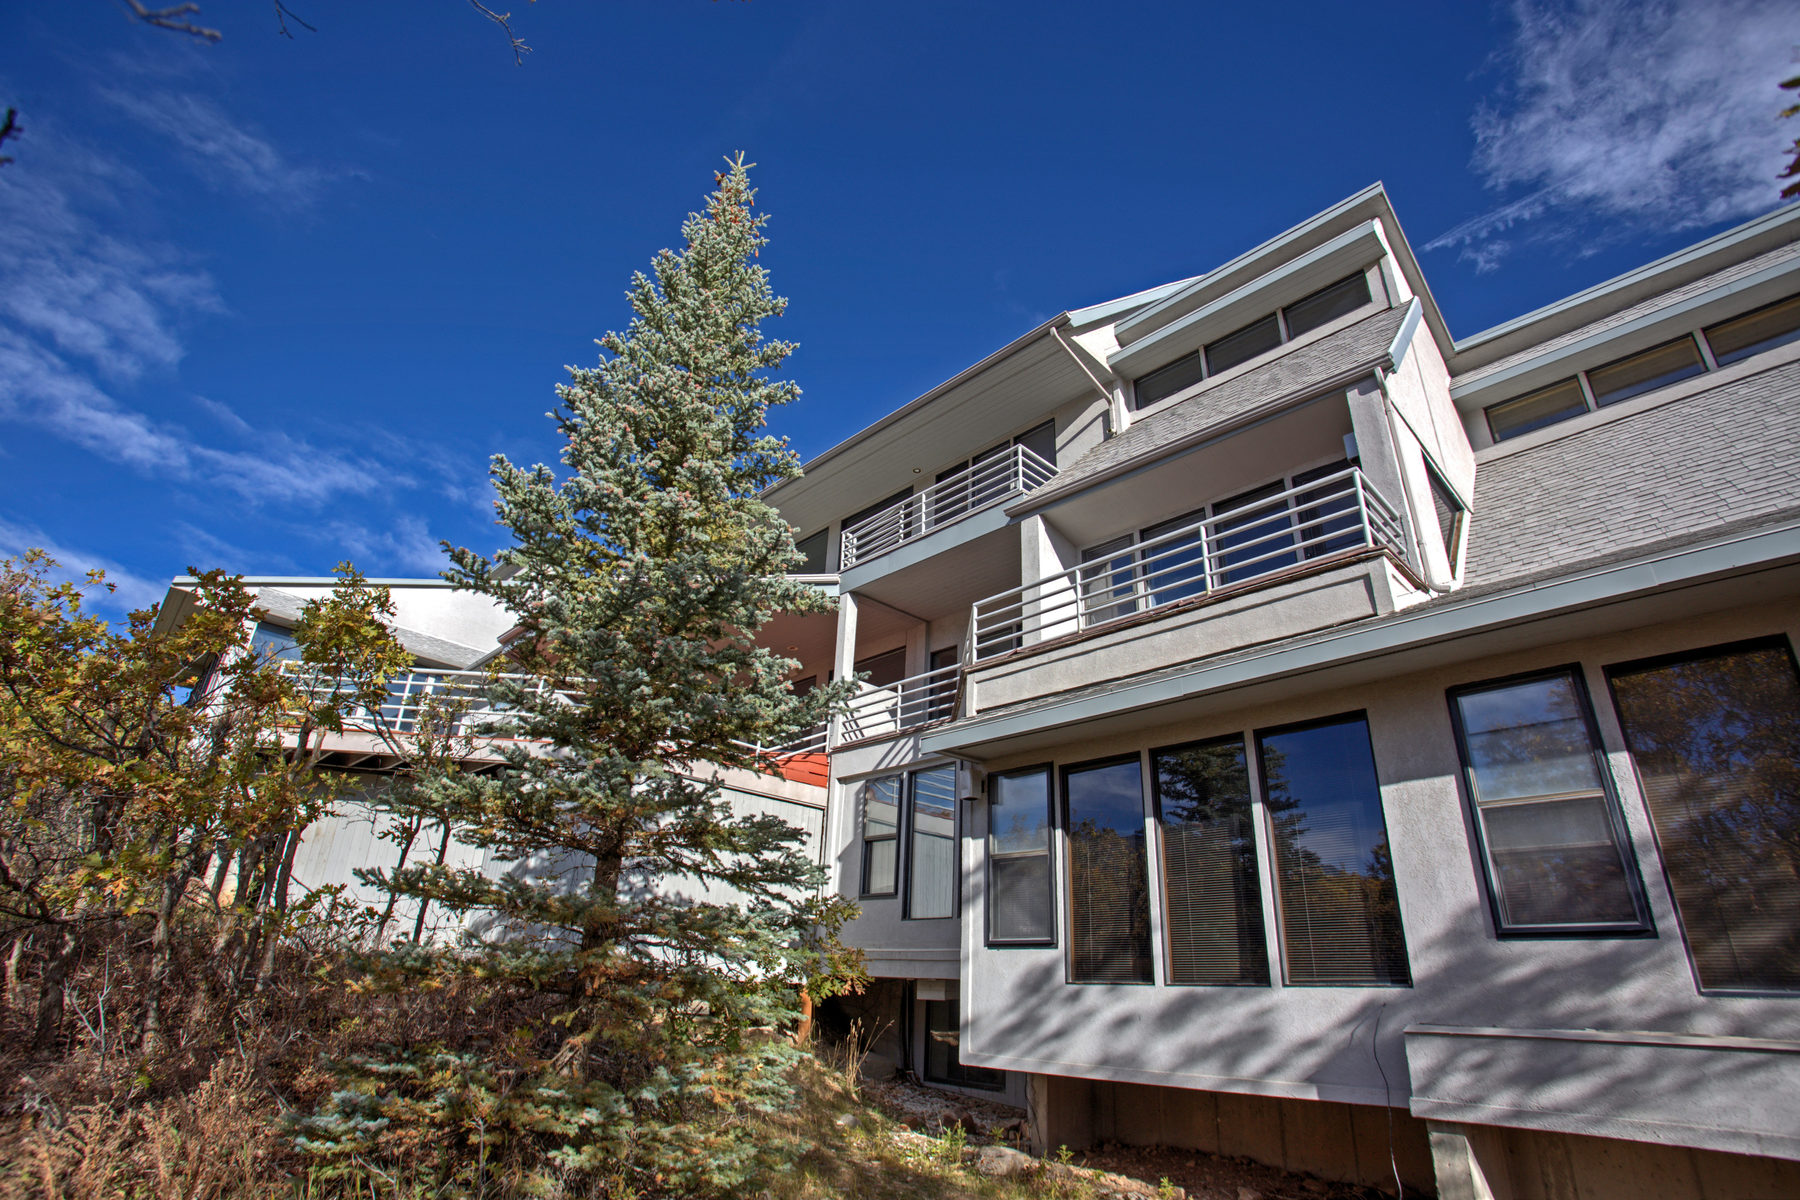 Maison unifamiliale pour l Vente à This Mountaintop Gem is the Perfect Personal or Corporate Retreat 325 Mountain Top Dr Park City, Utah, 84060 États-Unis